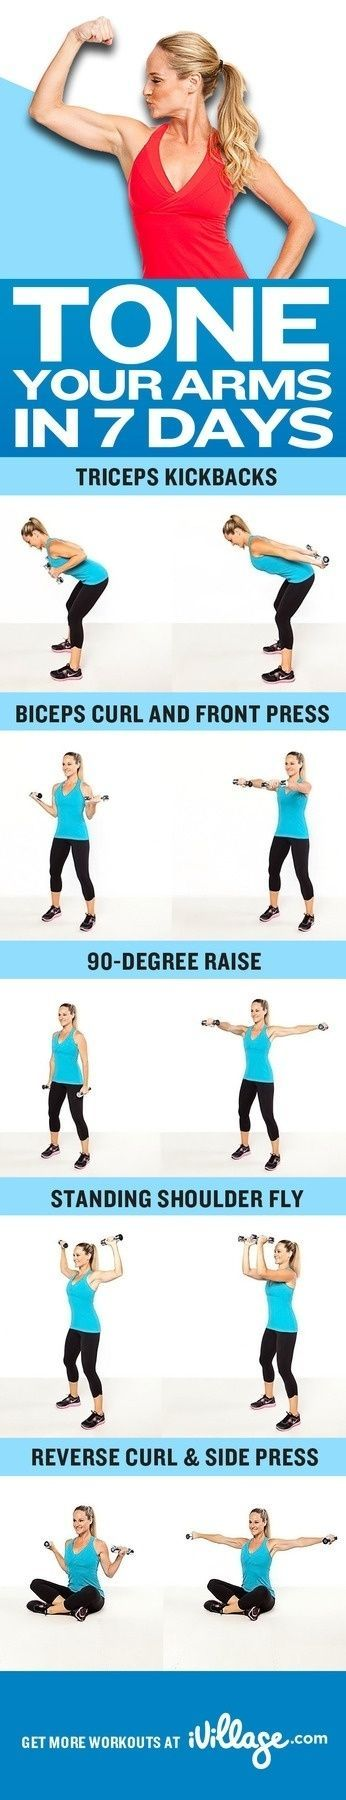 158963061820825877 Tone your arms in 7 days with these easy workouts.